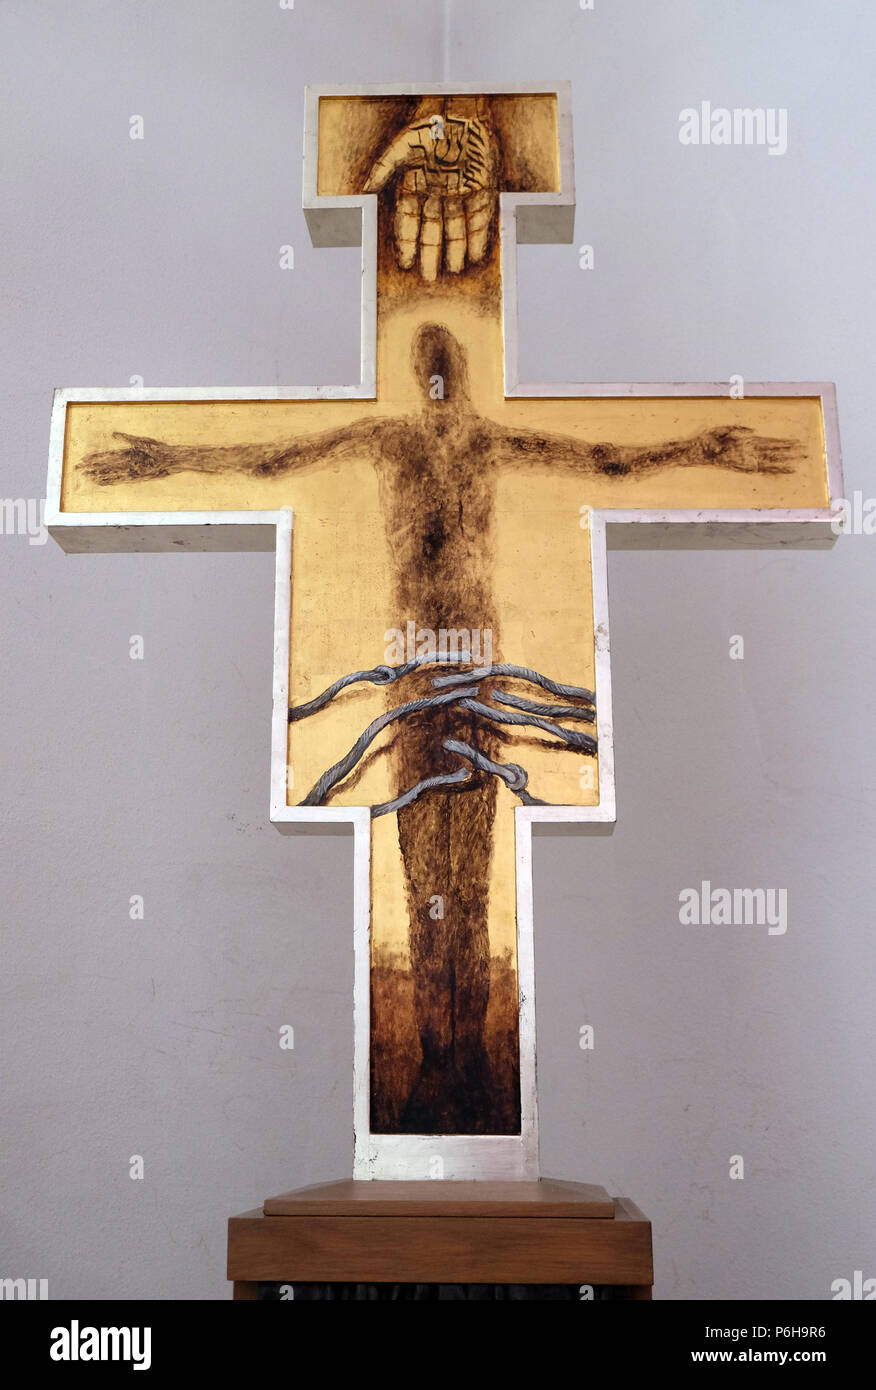 Cross by Sieger Koeder in the Chapel of St. Francis in Ellwangen, Germany Stock Photo